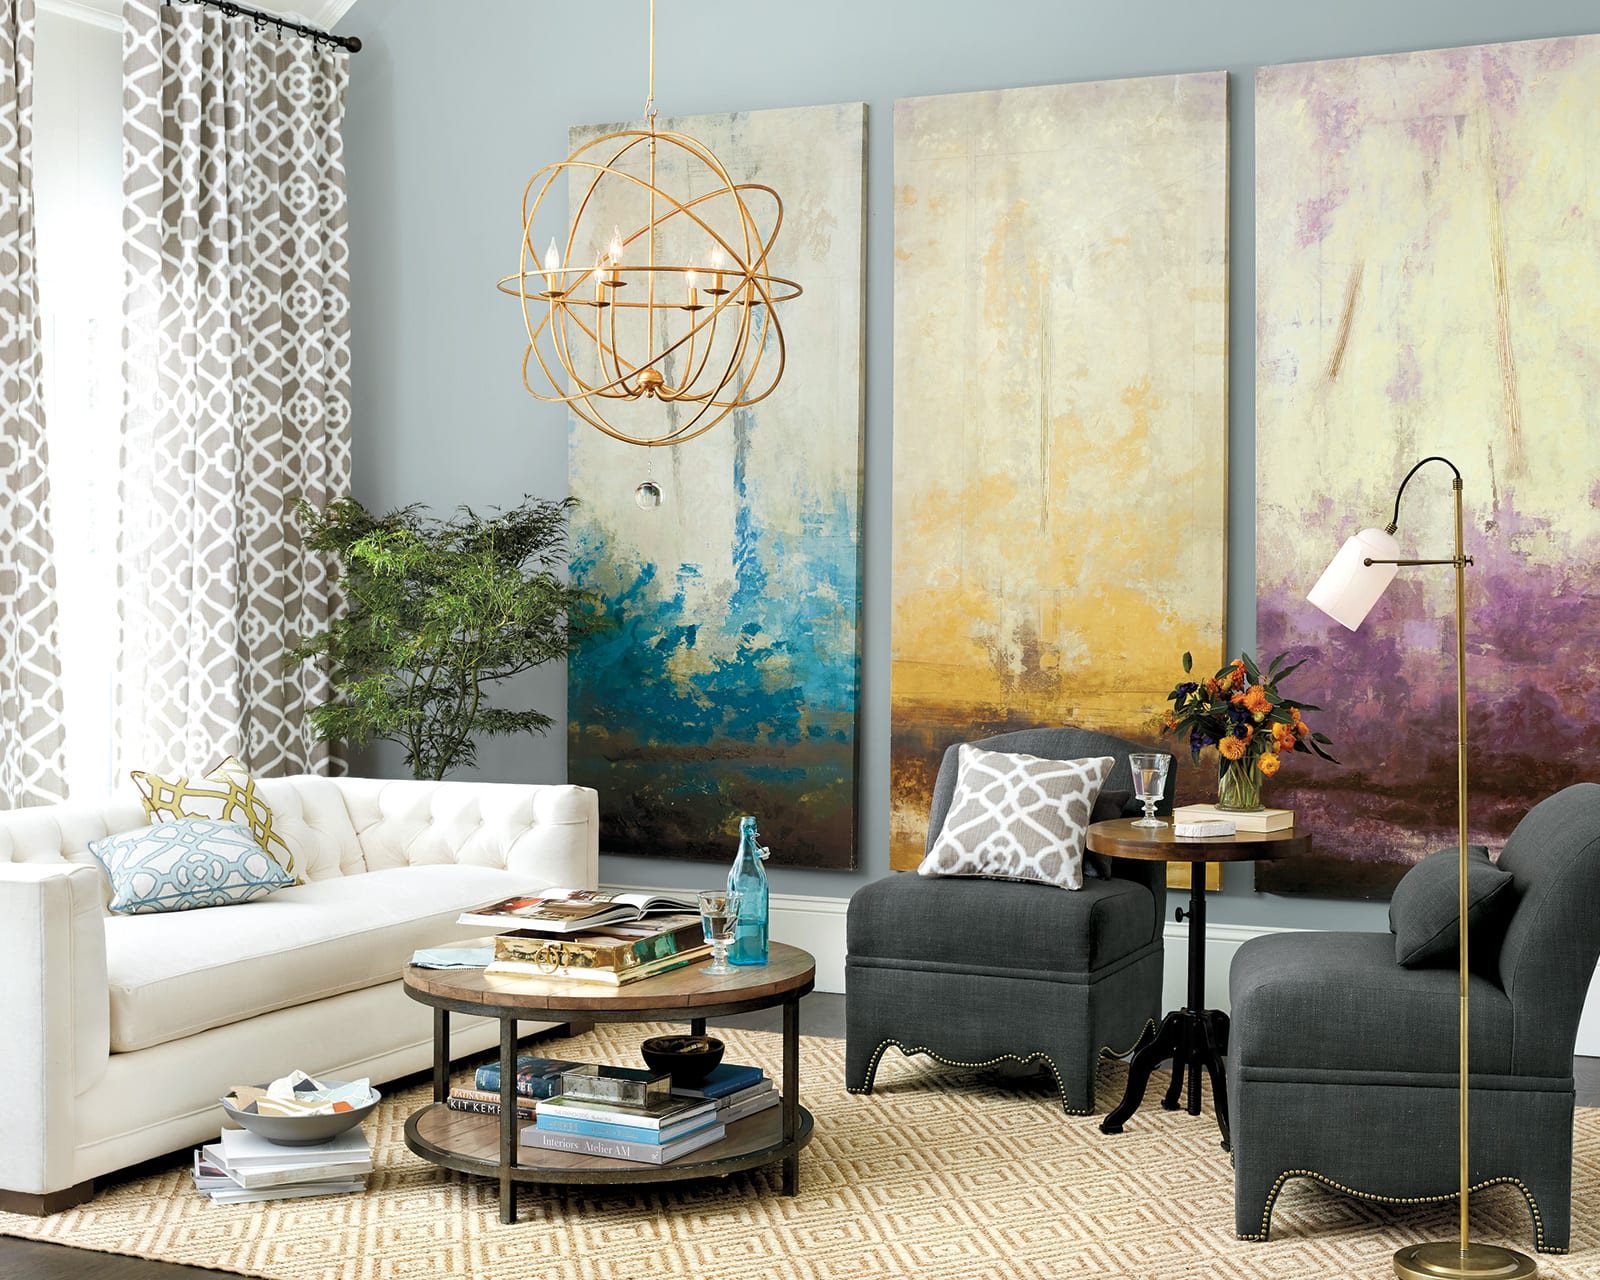 10 Ways To Fill A Blank Wall